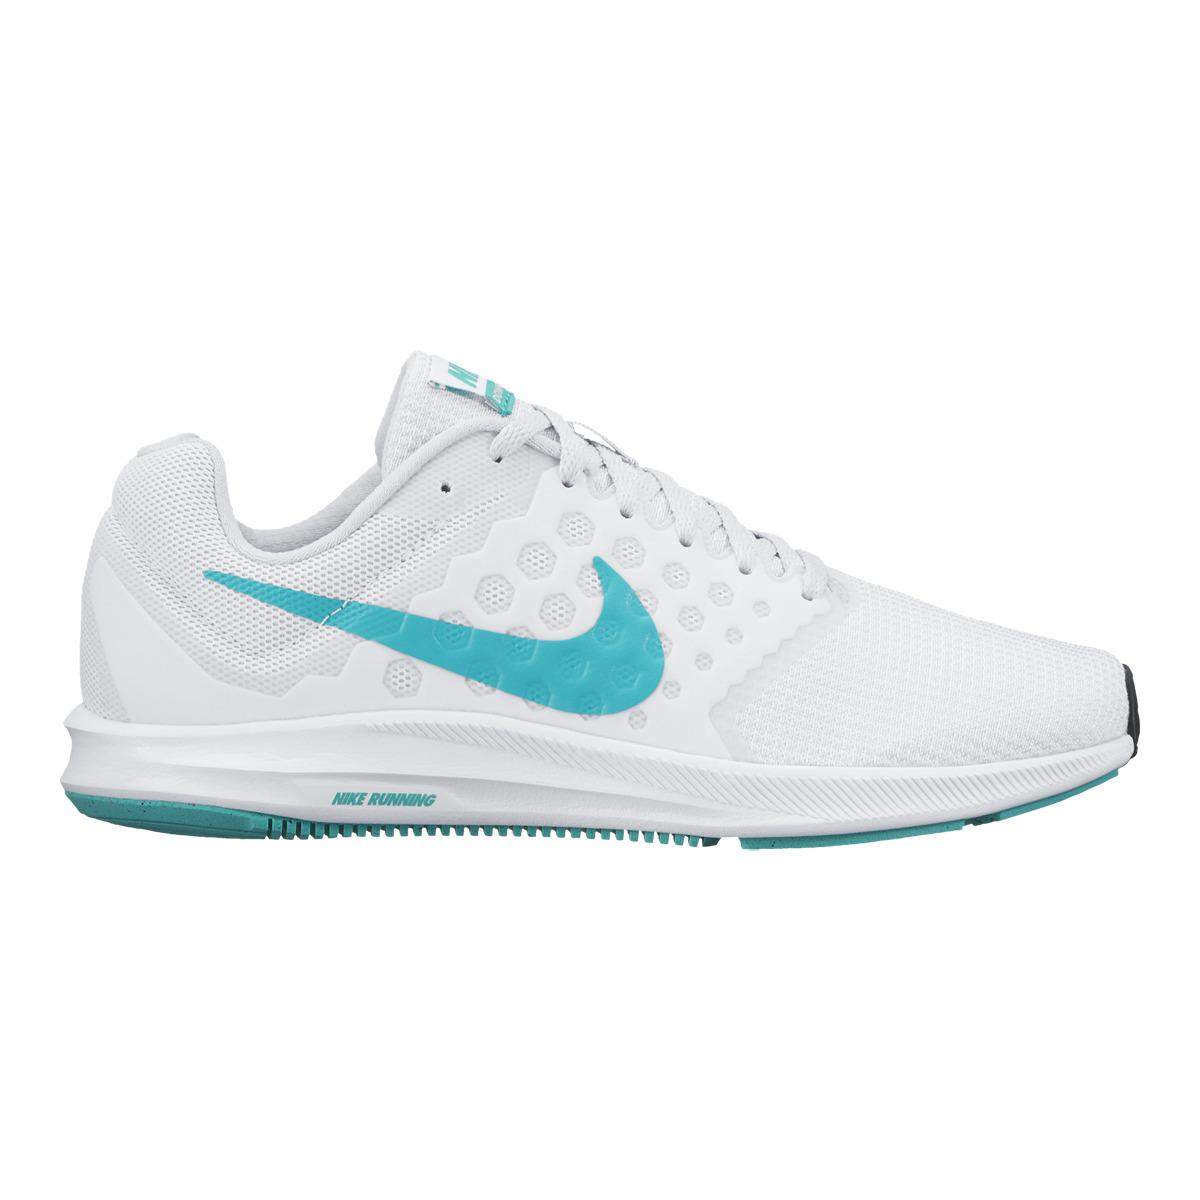 d993bd5311a09 ... sale lyst nike downshifter 7 running shoes in blue 15039 3bbd2